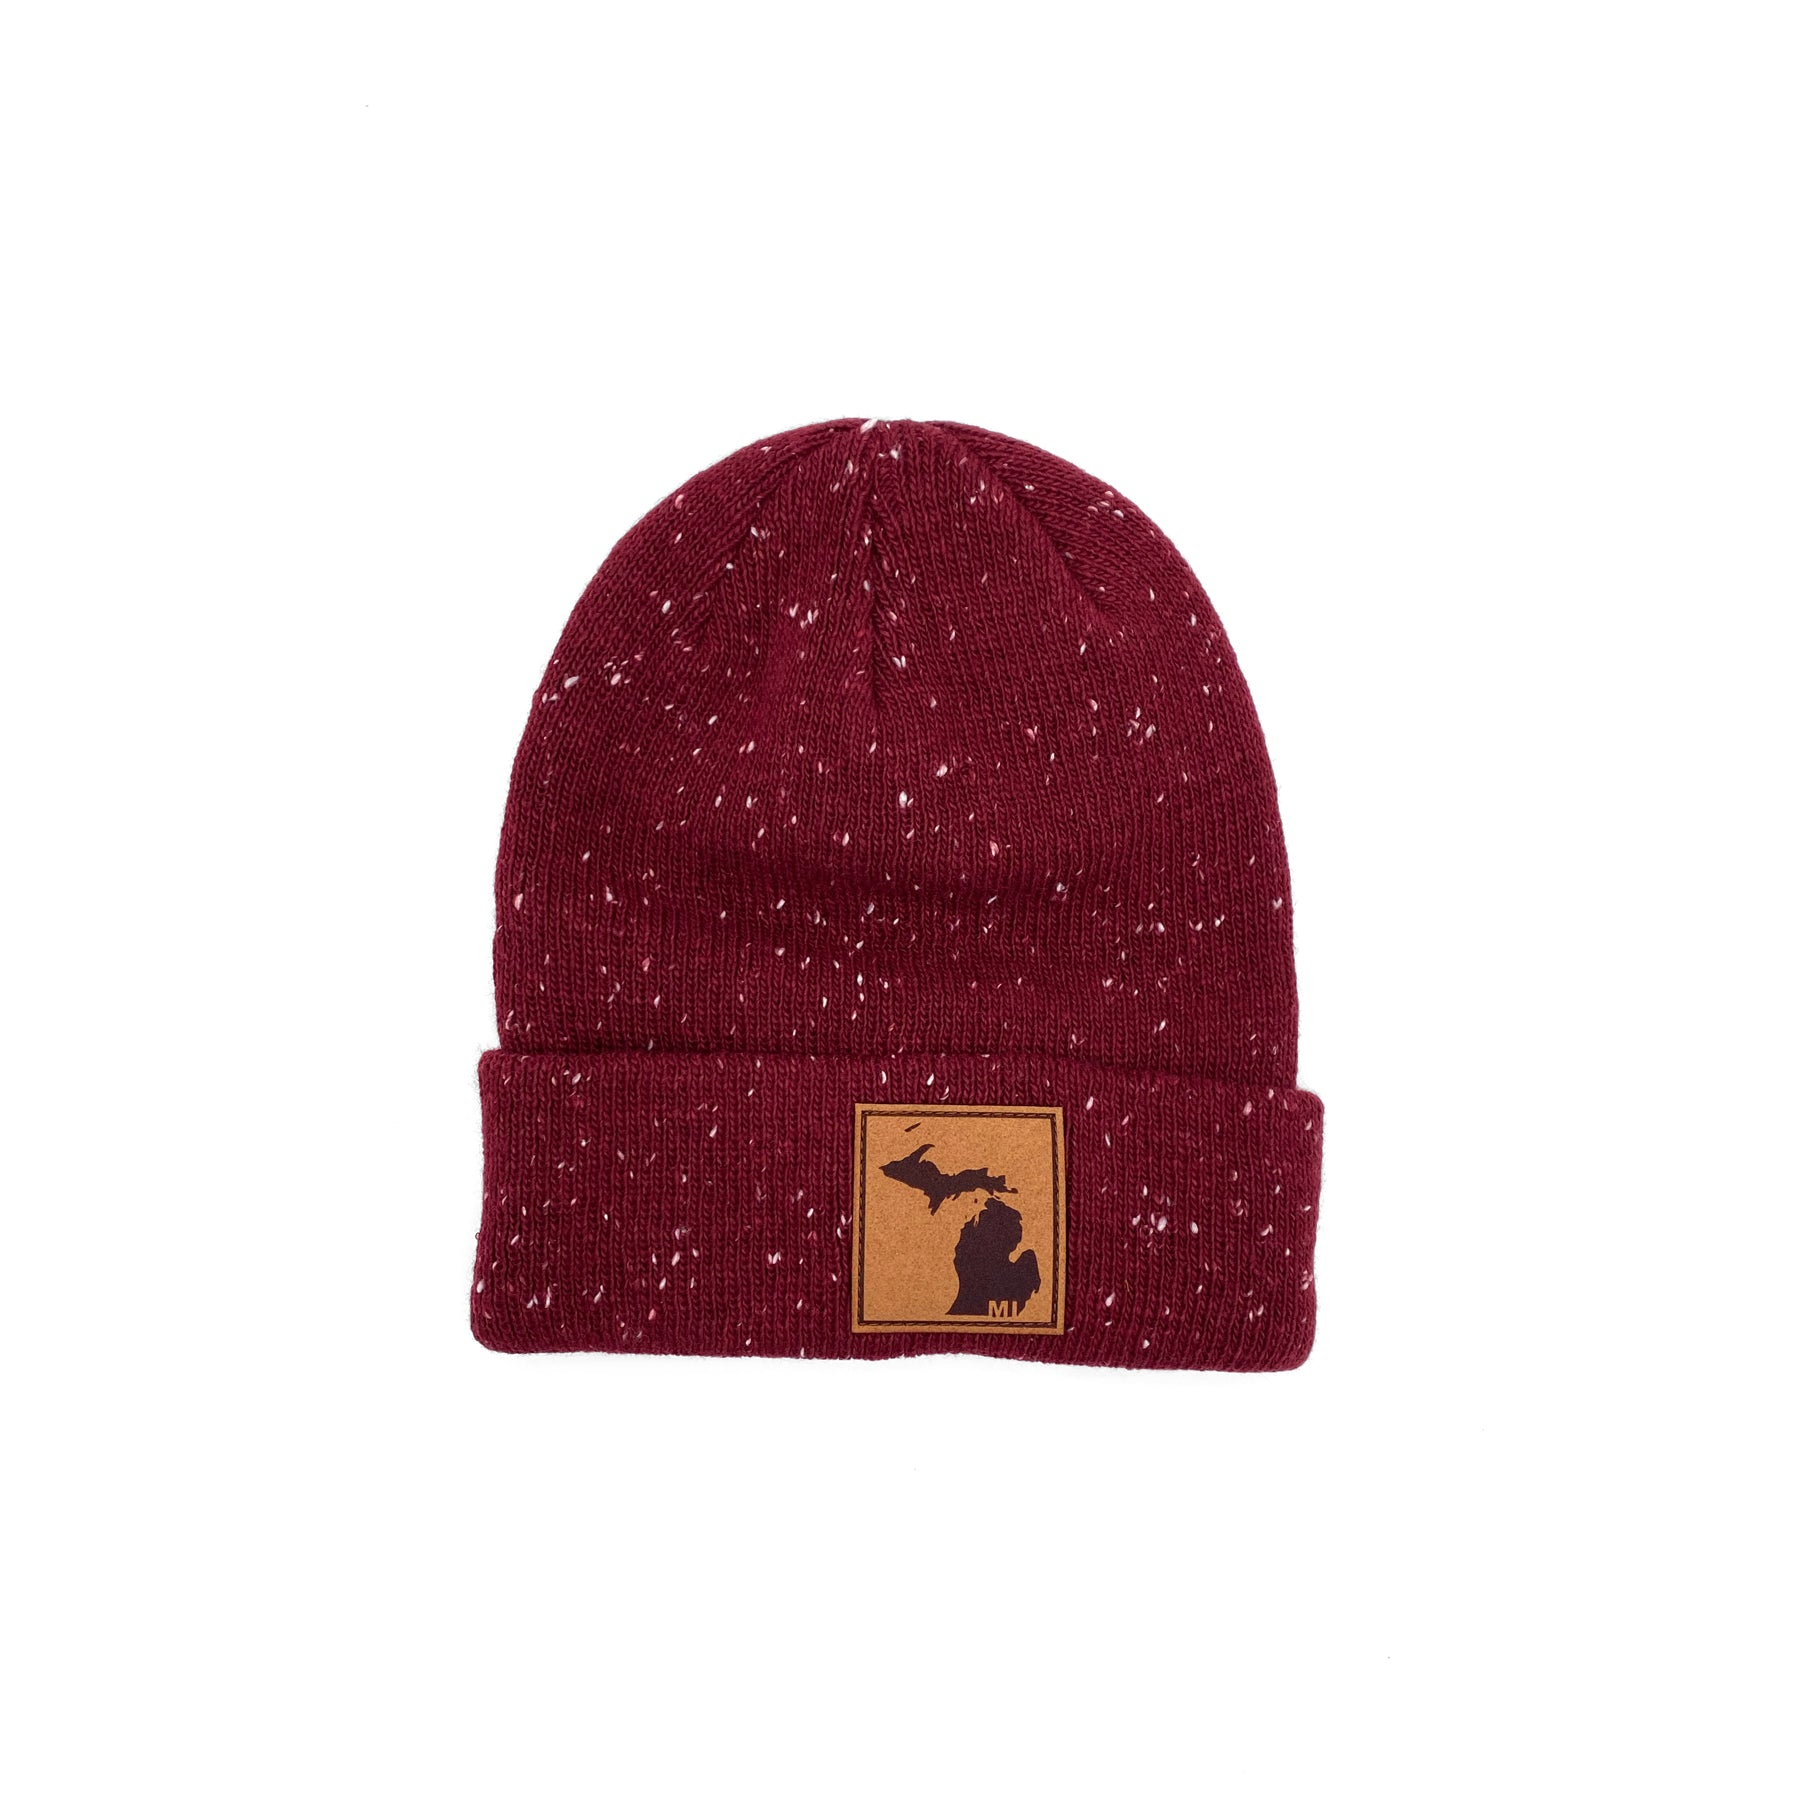 Red Beanie with Michigan Patch